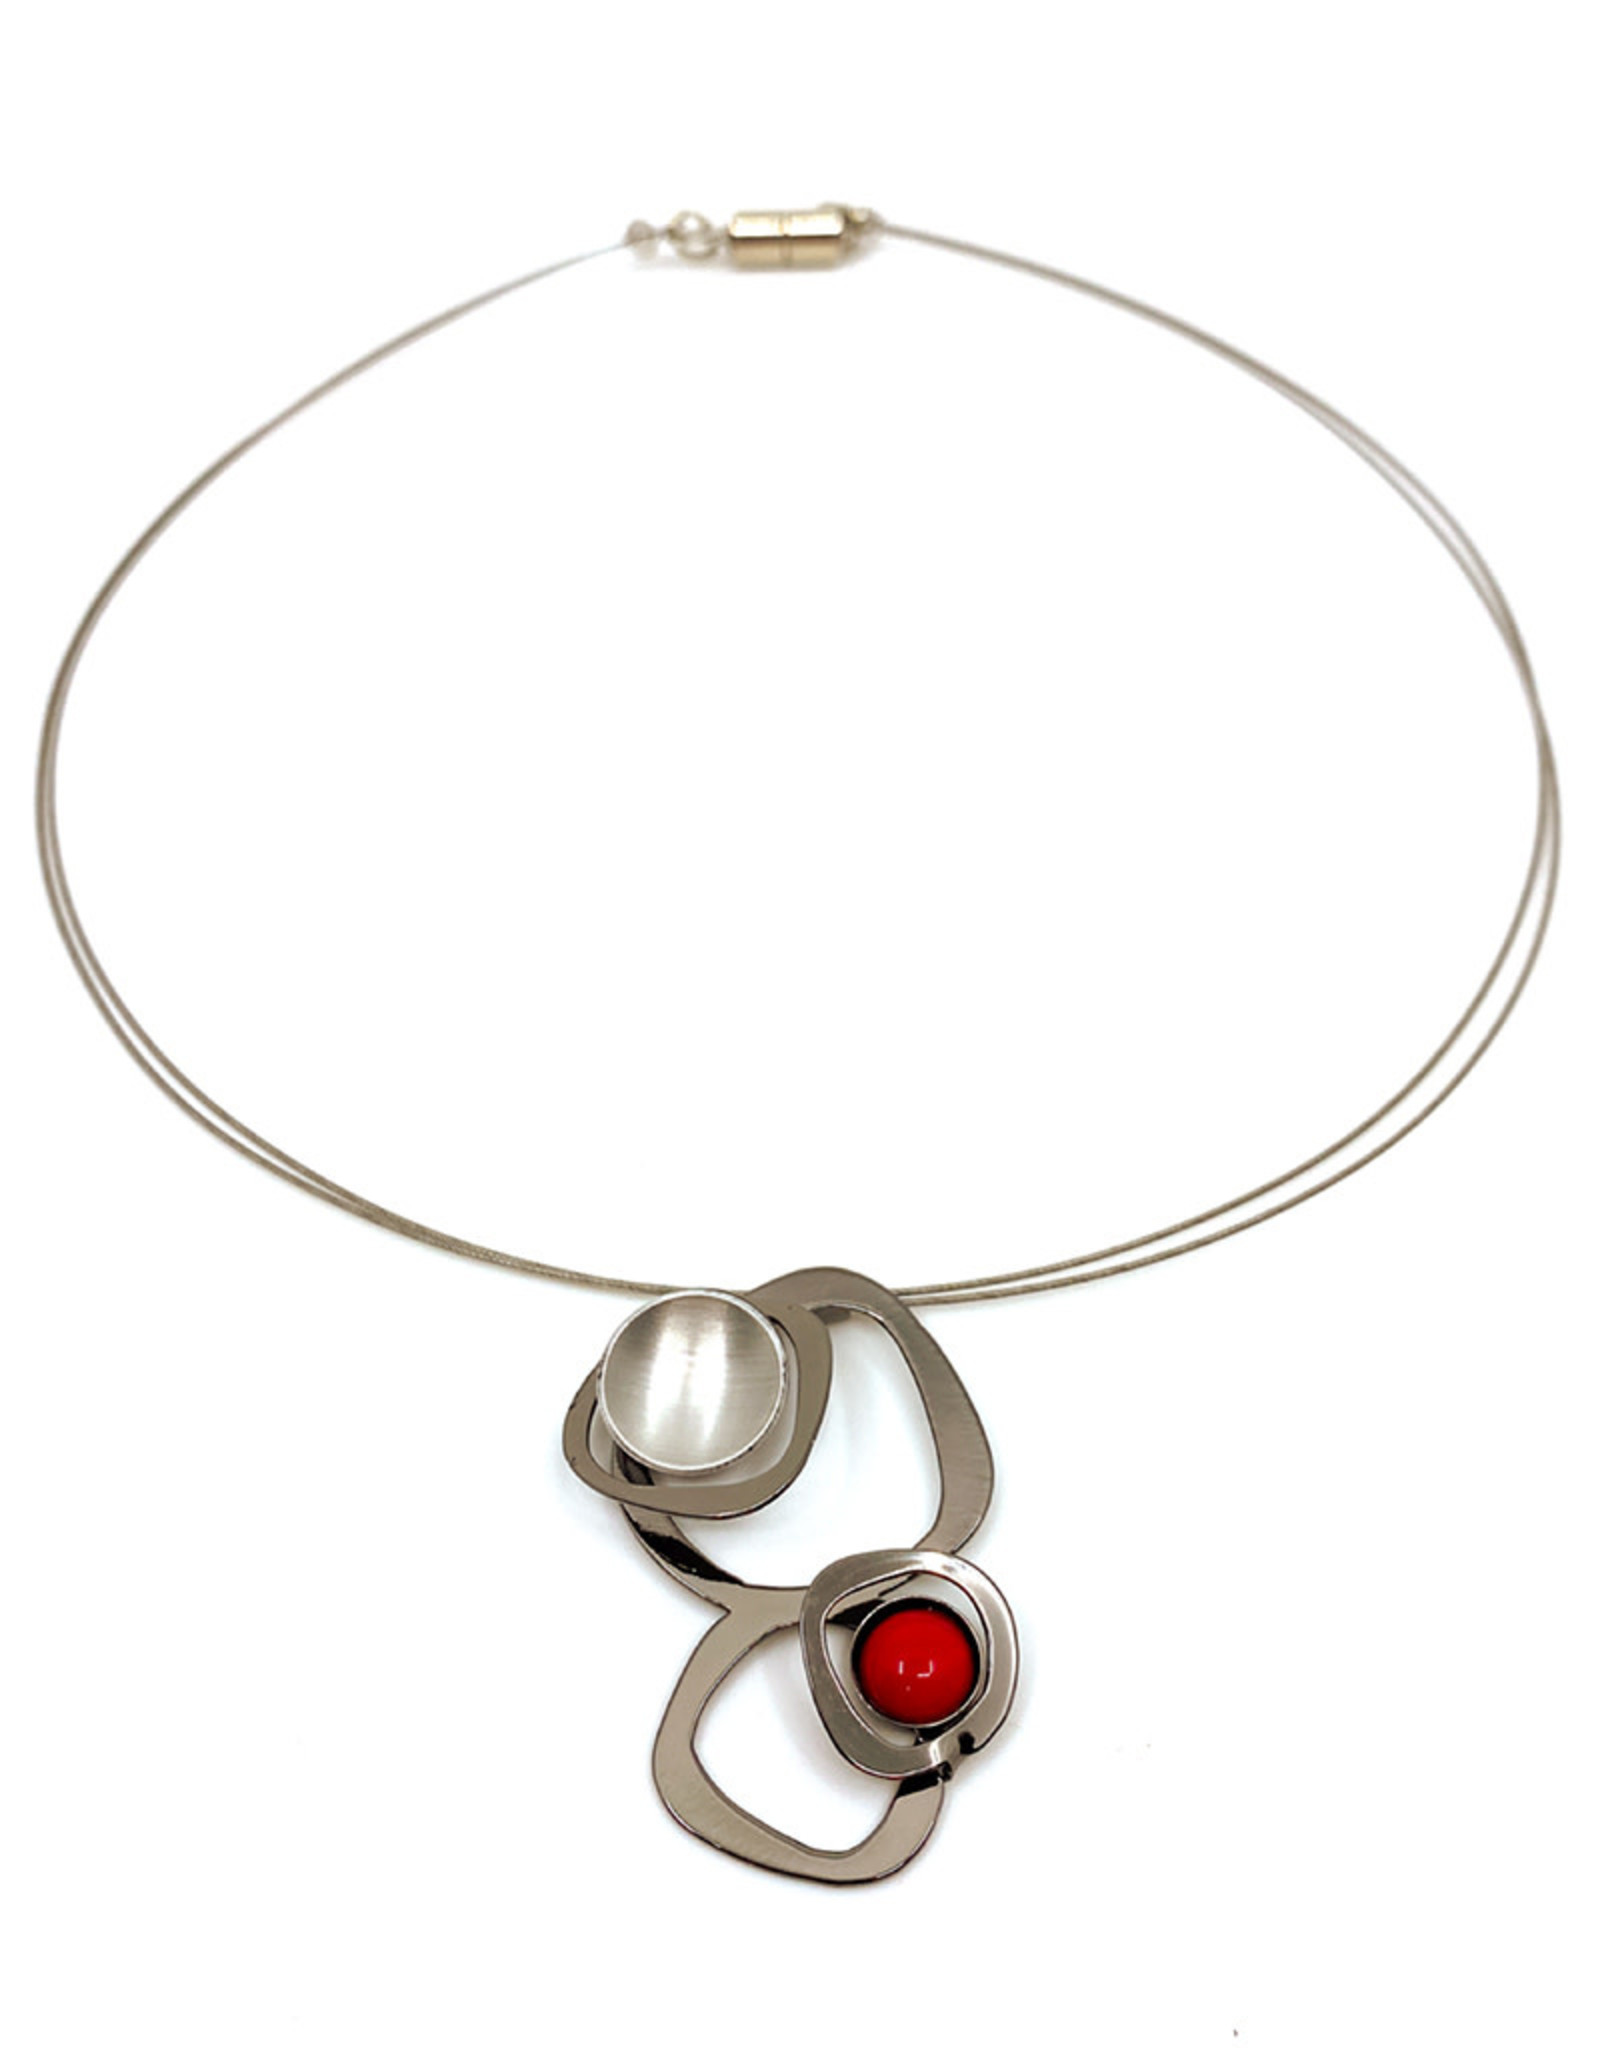 CHRISTOPHE POLY ABSTRACT CIRCLE WIRE NECKLACE